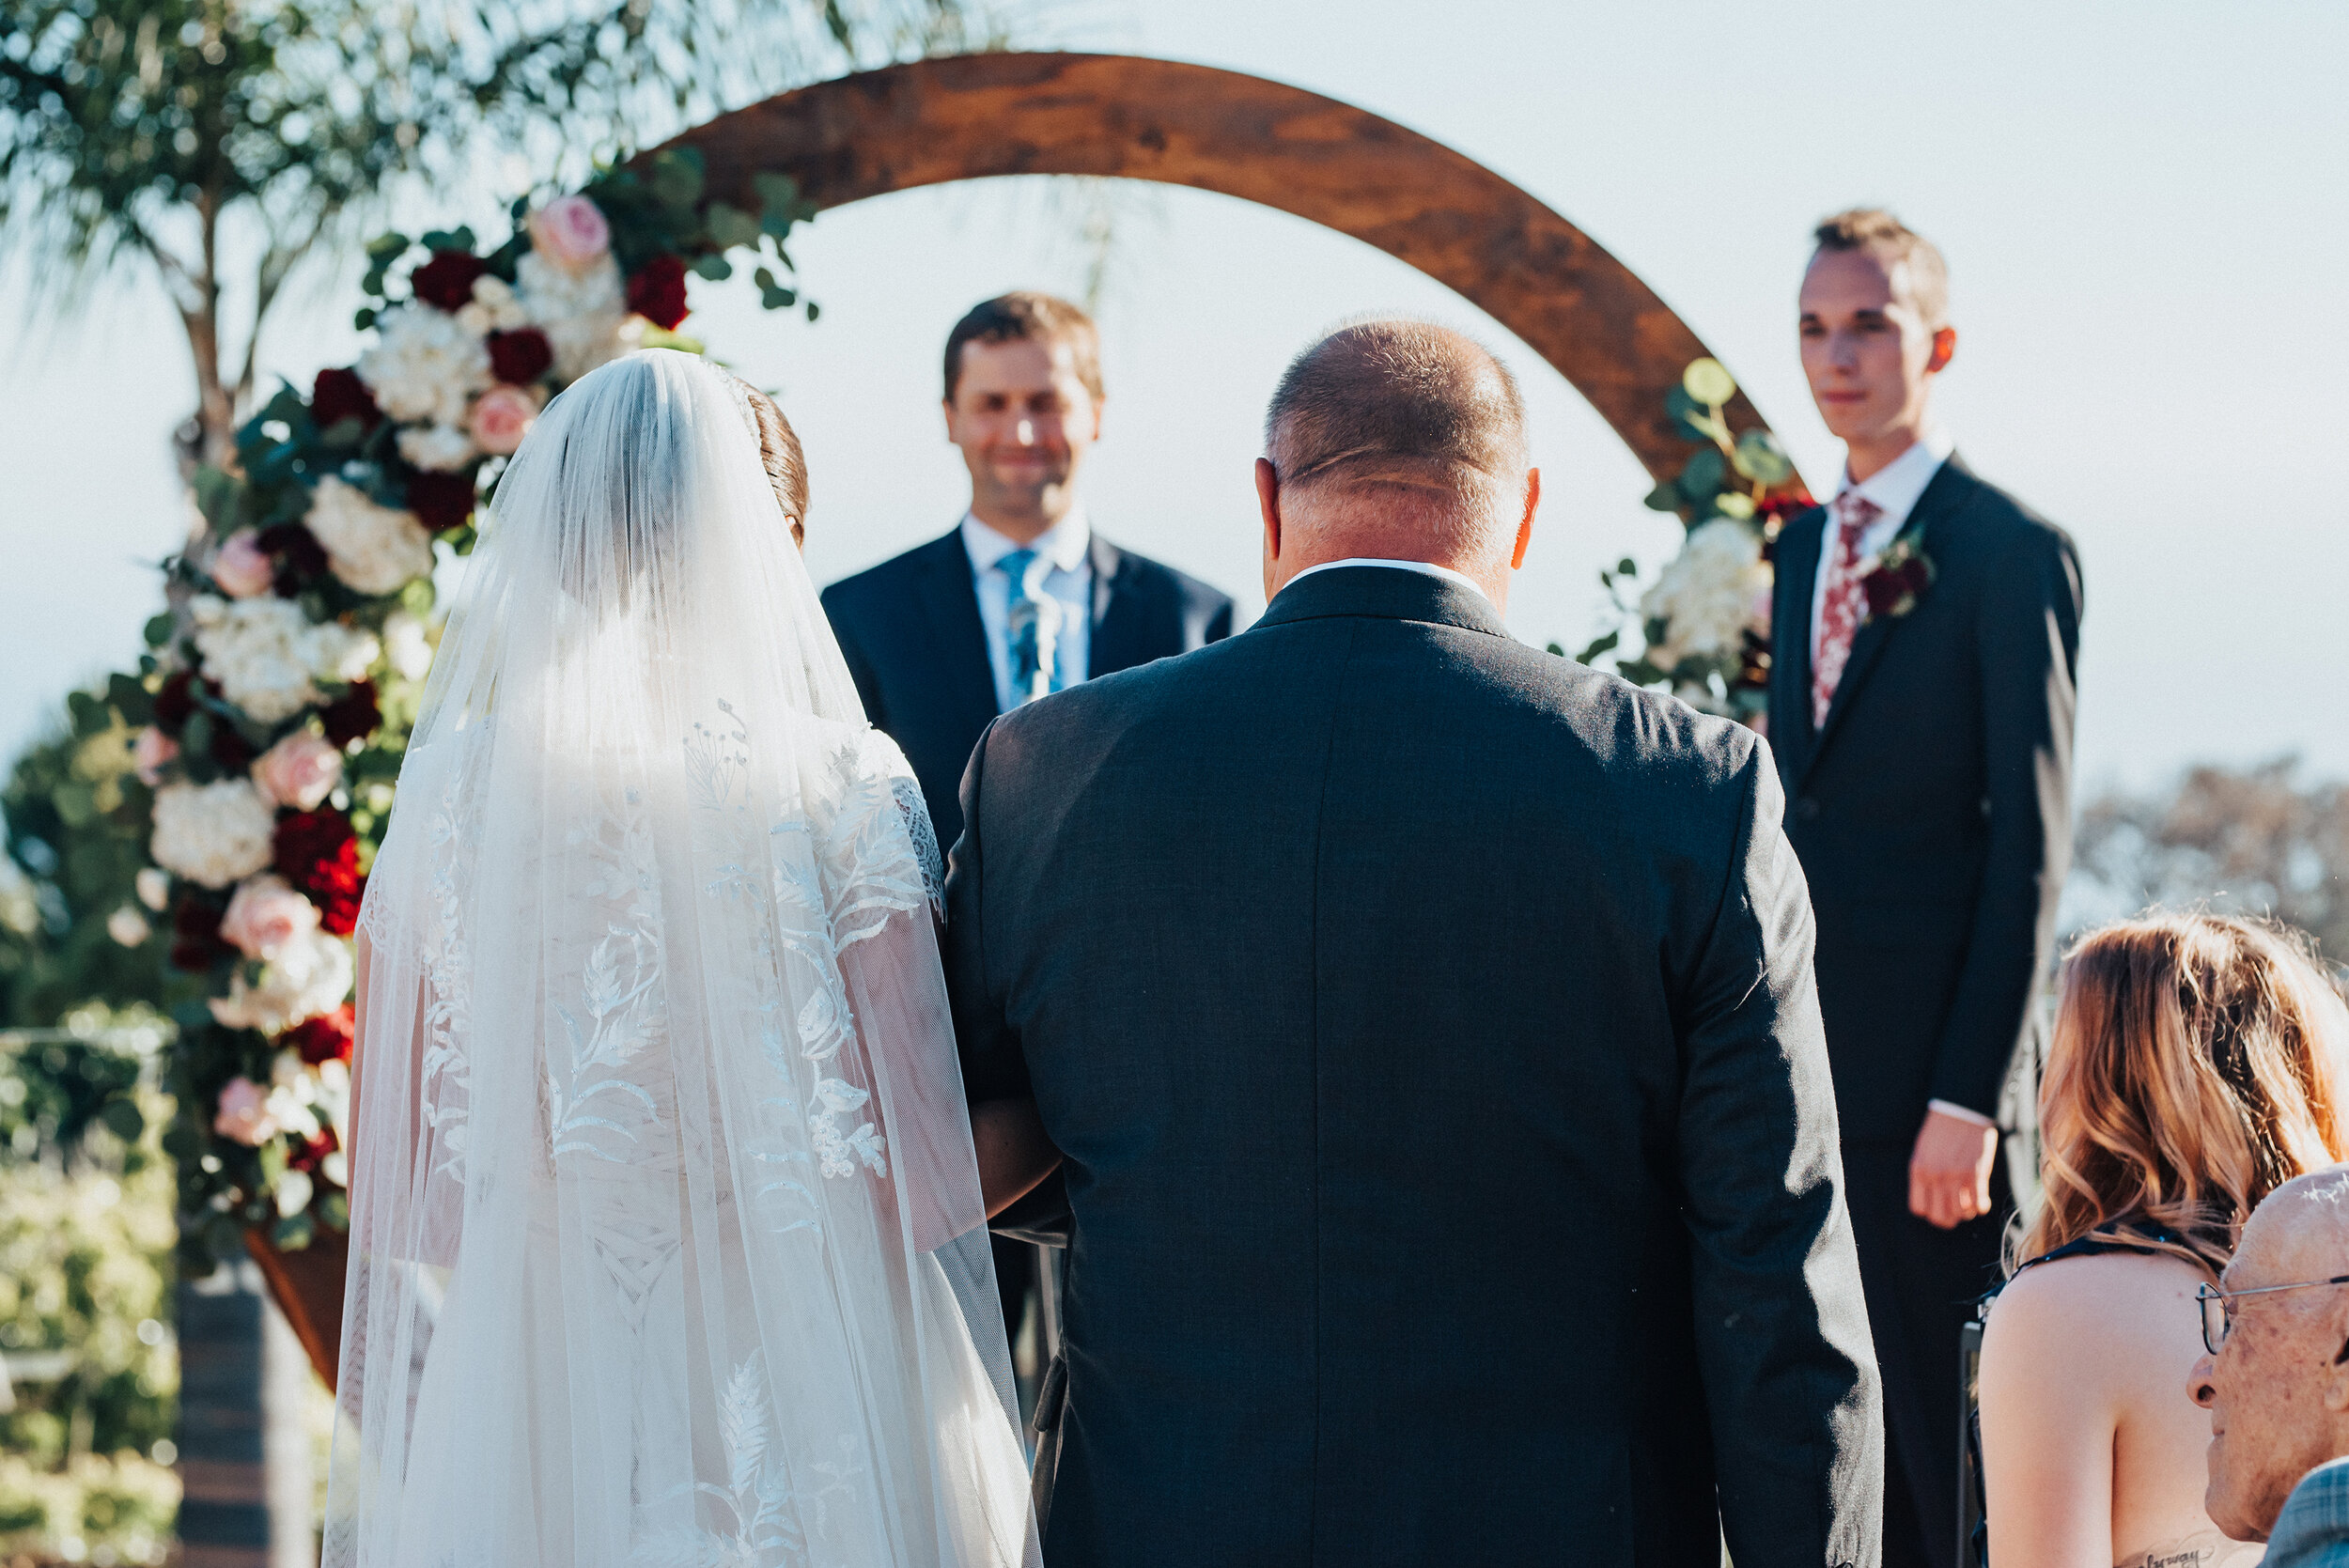 Father of the bride walking his daughter to her groom at this lovely backyard wedding in Laguna Beach. Kristi Alyse photography Laguna Beach wedding California brides Logan Utah wedding photographer backyard wedding destination photographer covid wedding bride and groom #kristialysephotography #weddingphotography #Lagunabeach #destinationphotographer #weddingday #love #backyardwedding #loganutahphotographer #californiawedding #californiabrides